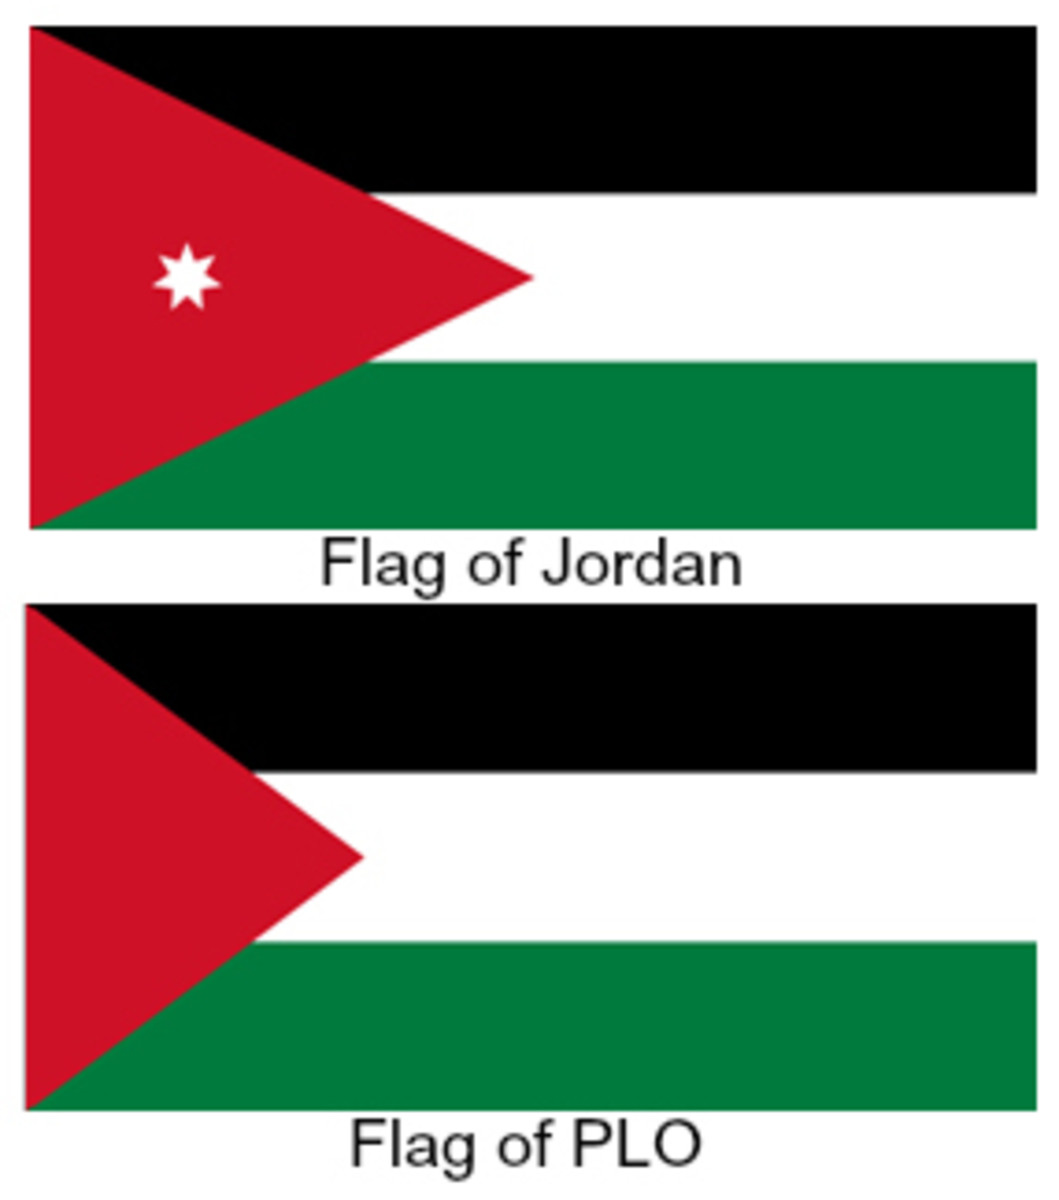 Flags of Jordan and the PLO